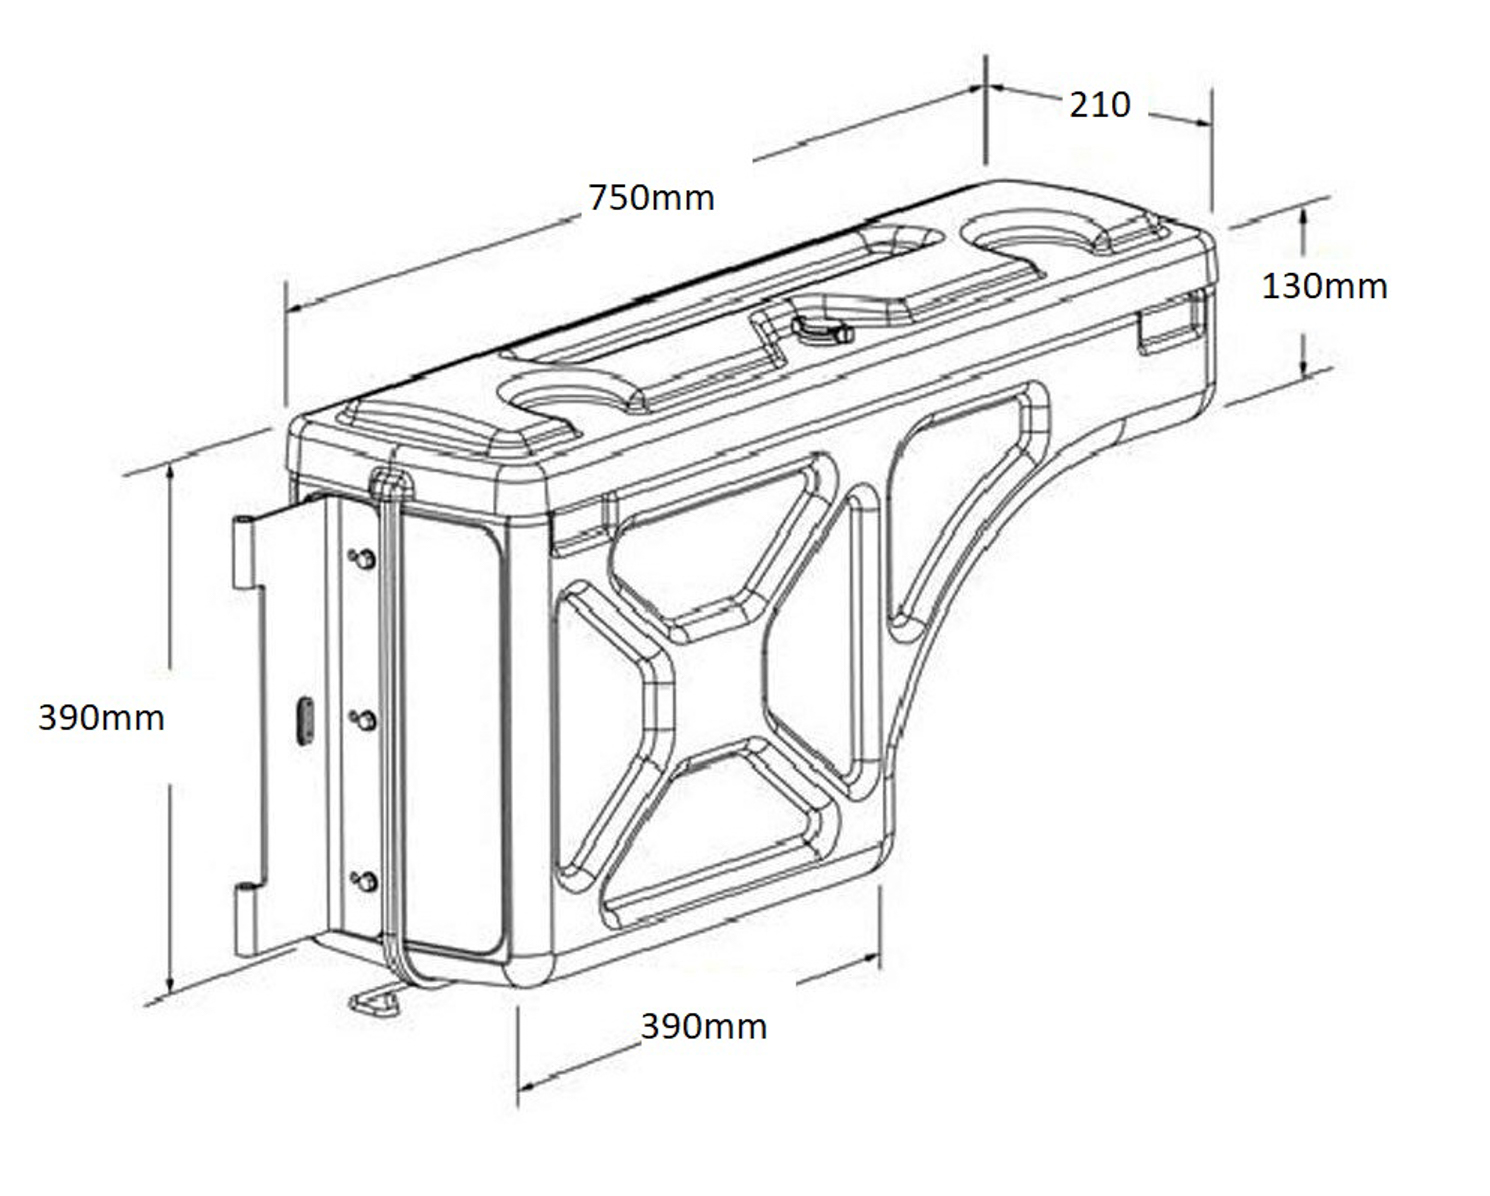 Swing Case Dimensions